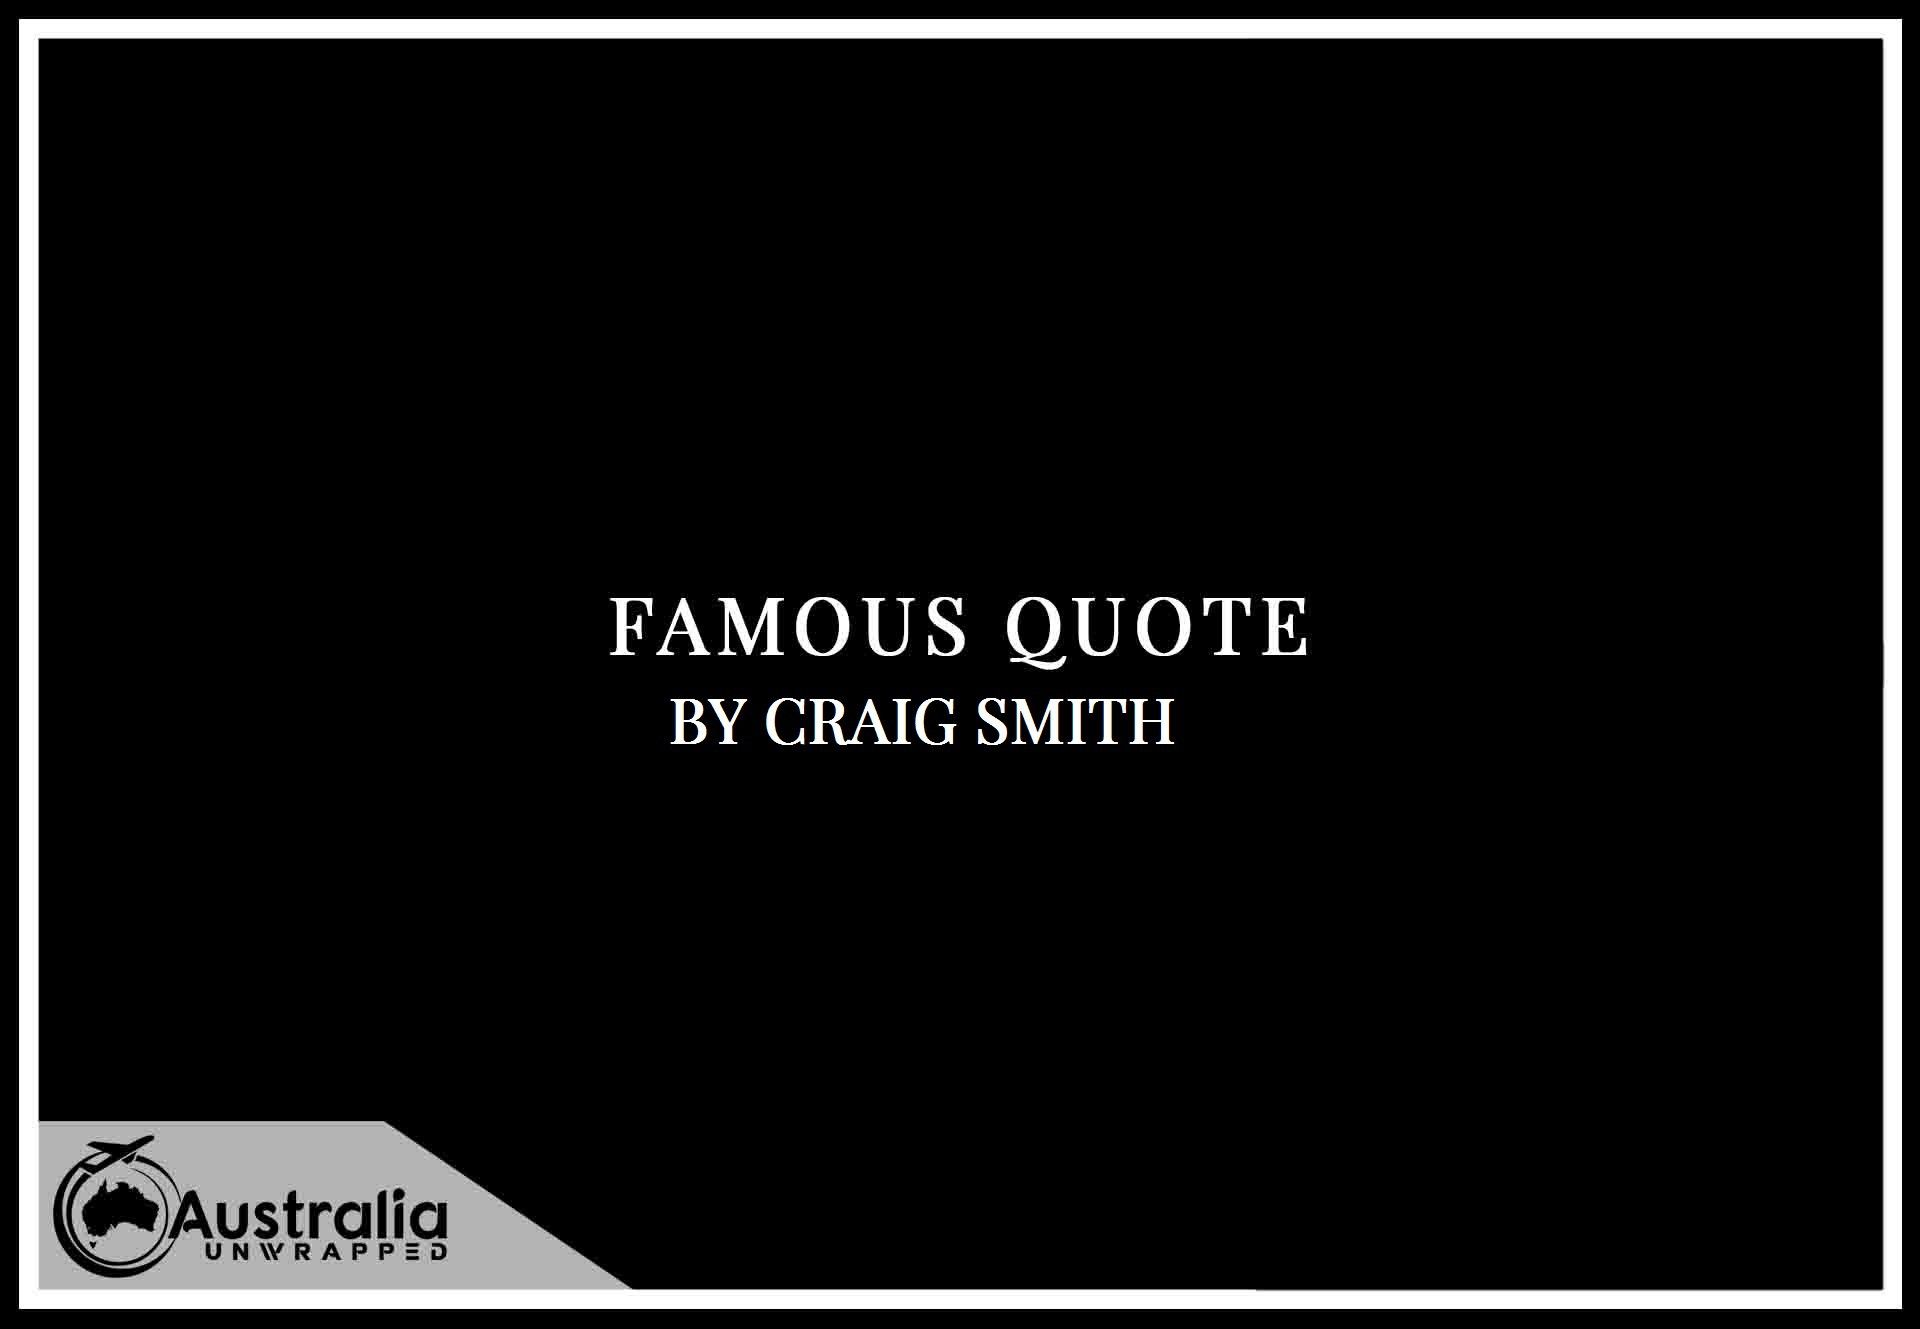 Craig Smith's Top 1 Popular and Famous Quotes